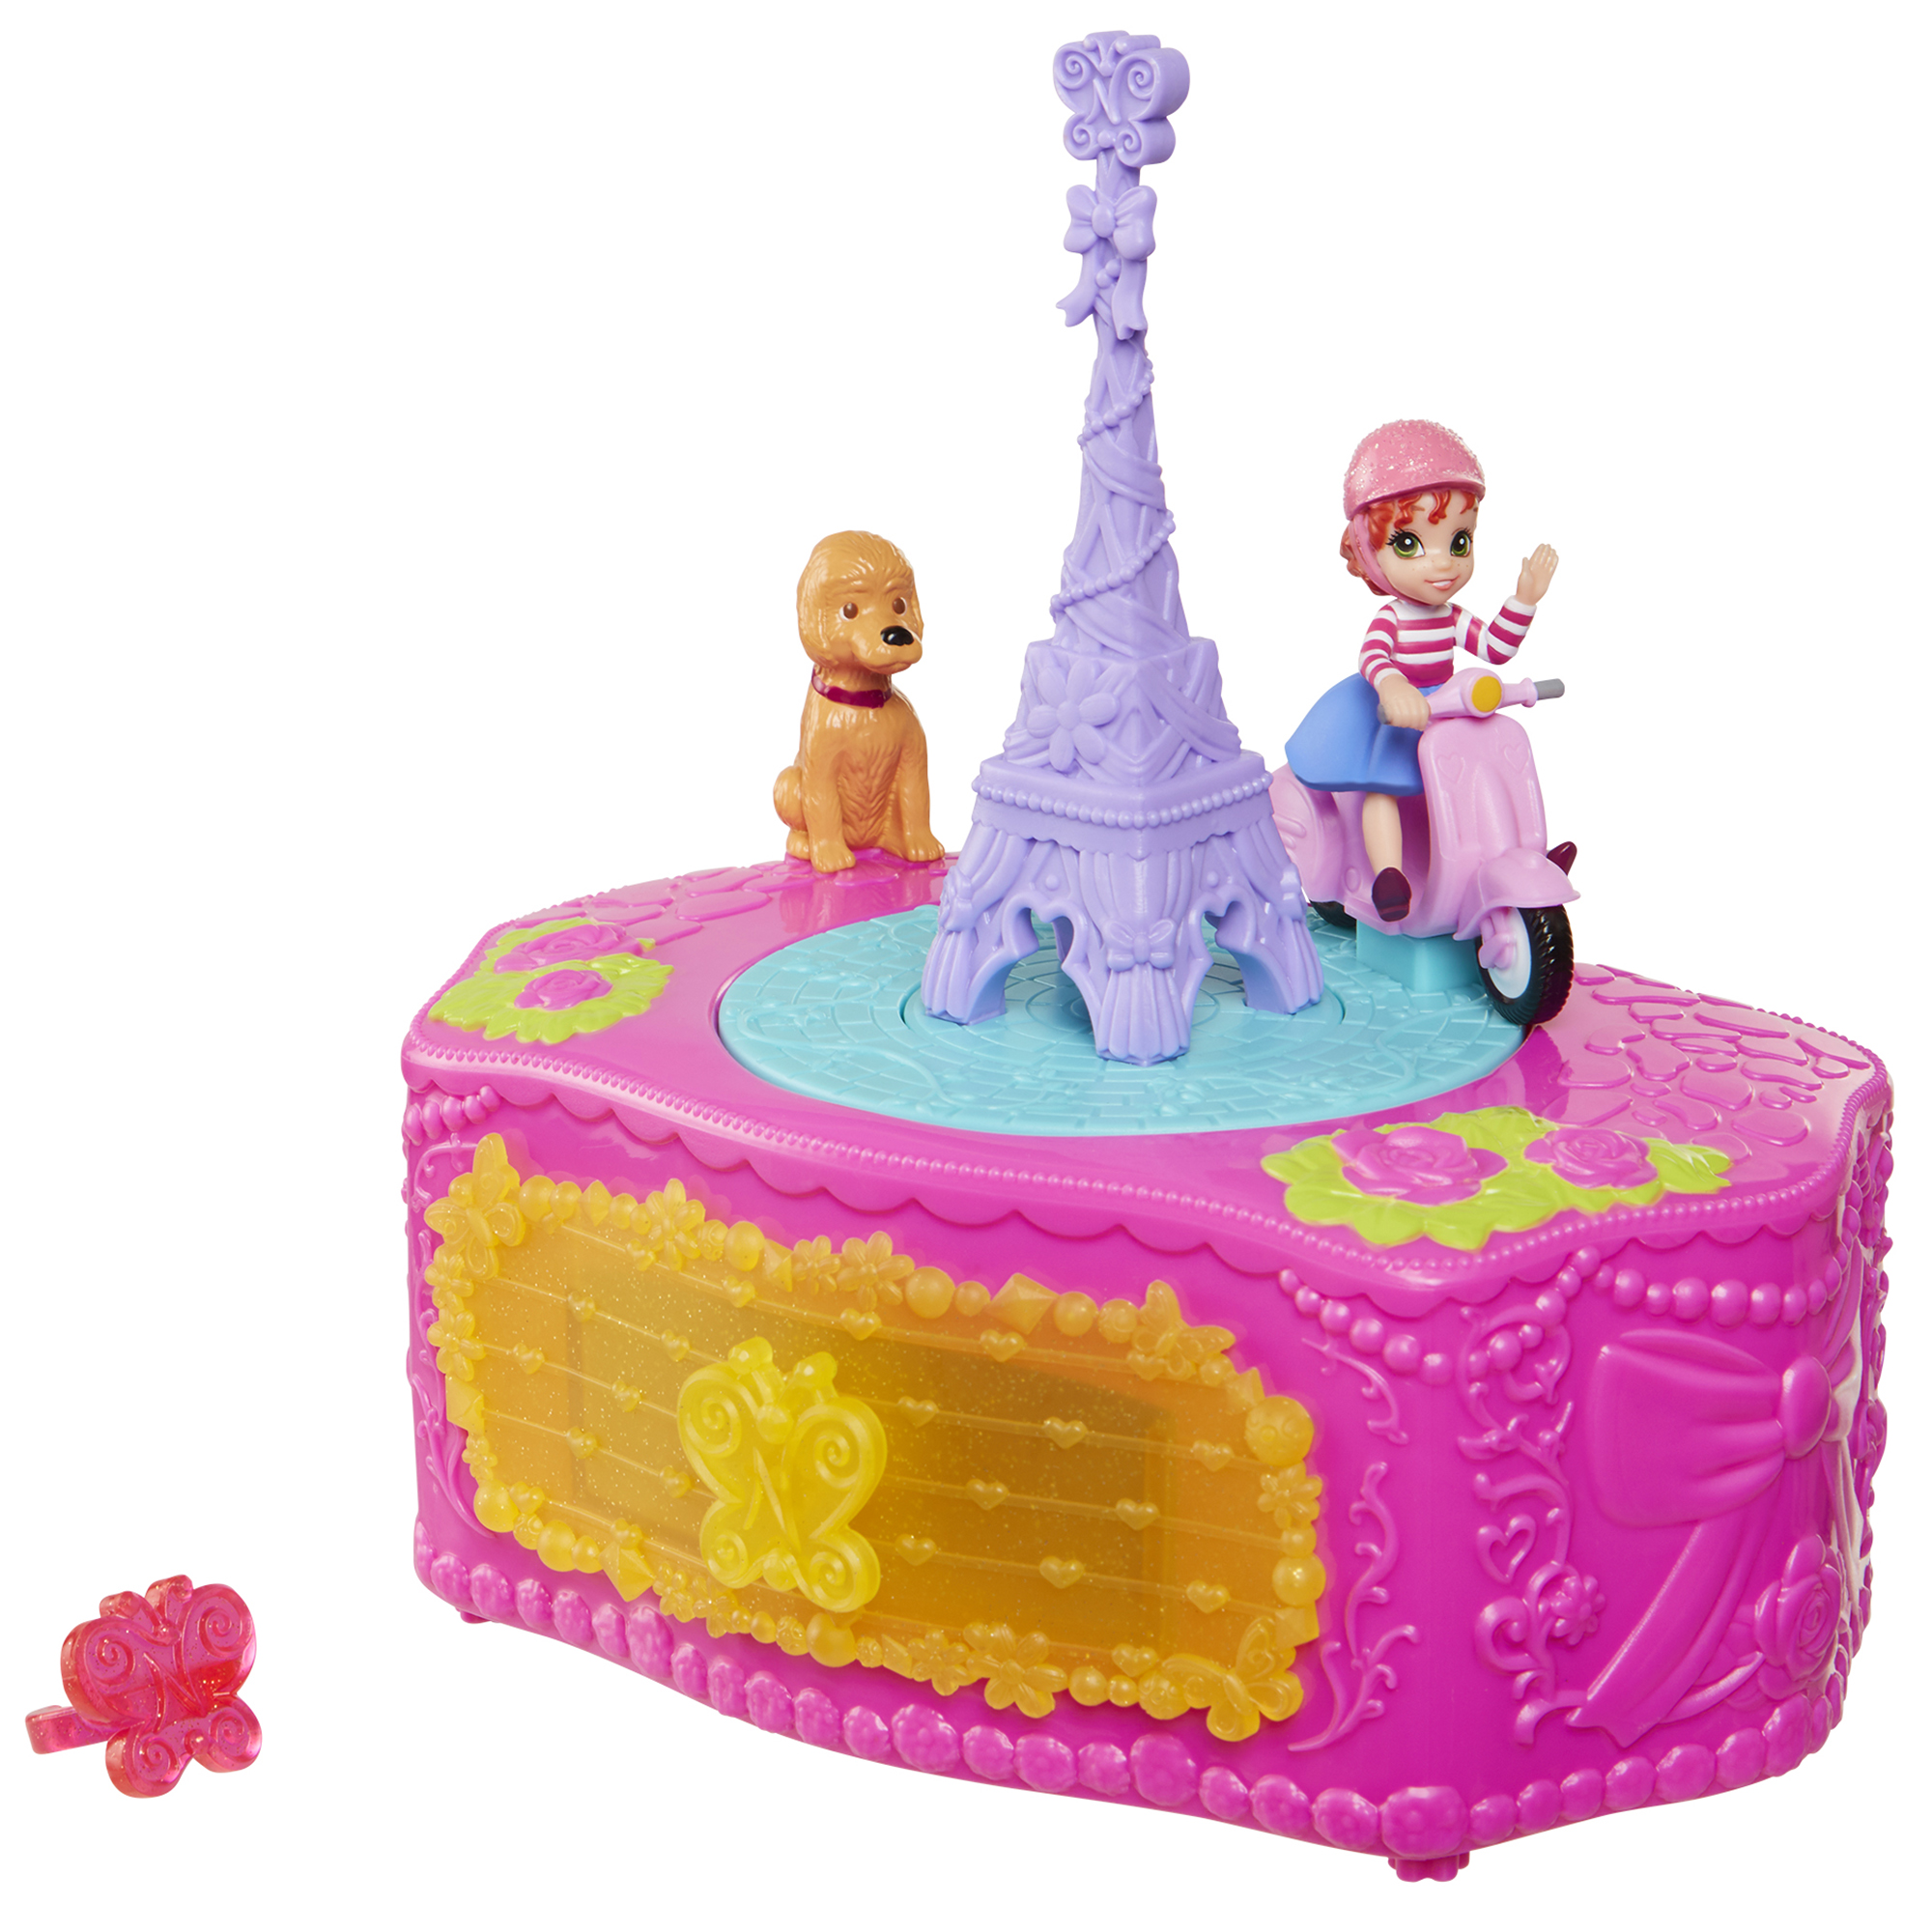 Ooh La La Music Box Disney